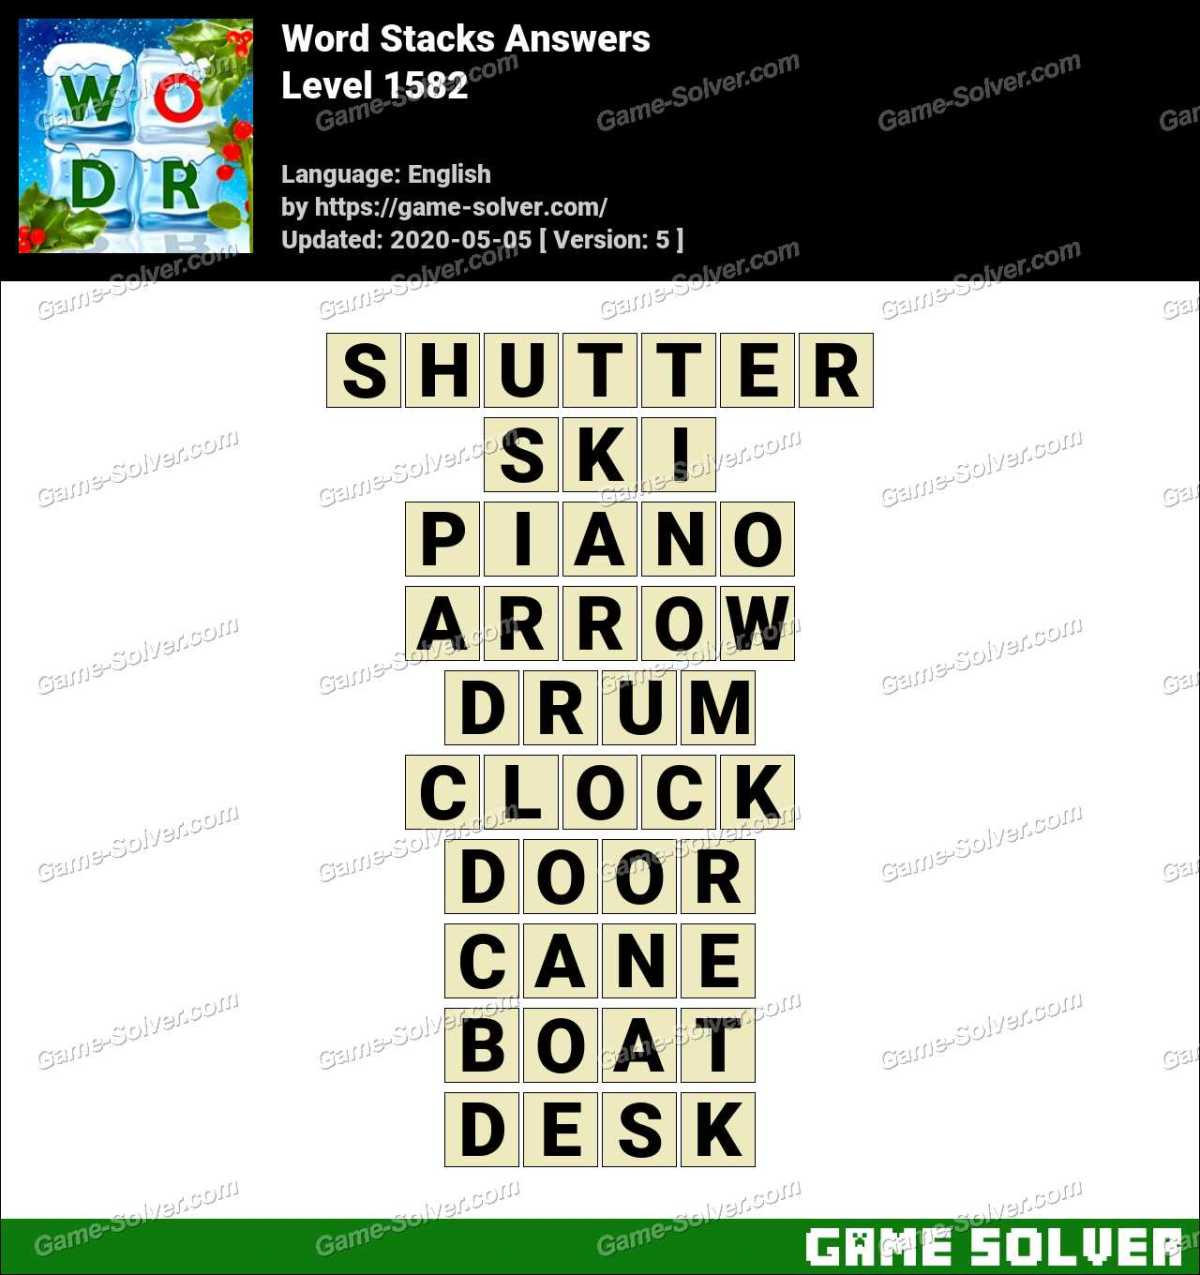 Word Stacks Level 1582 Answers